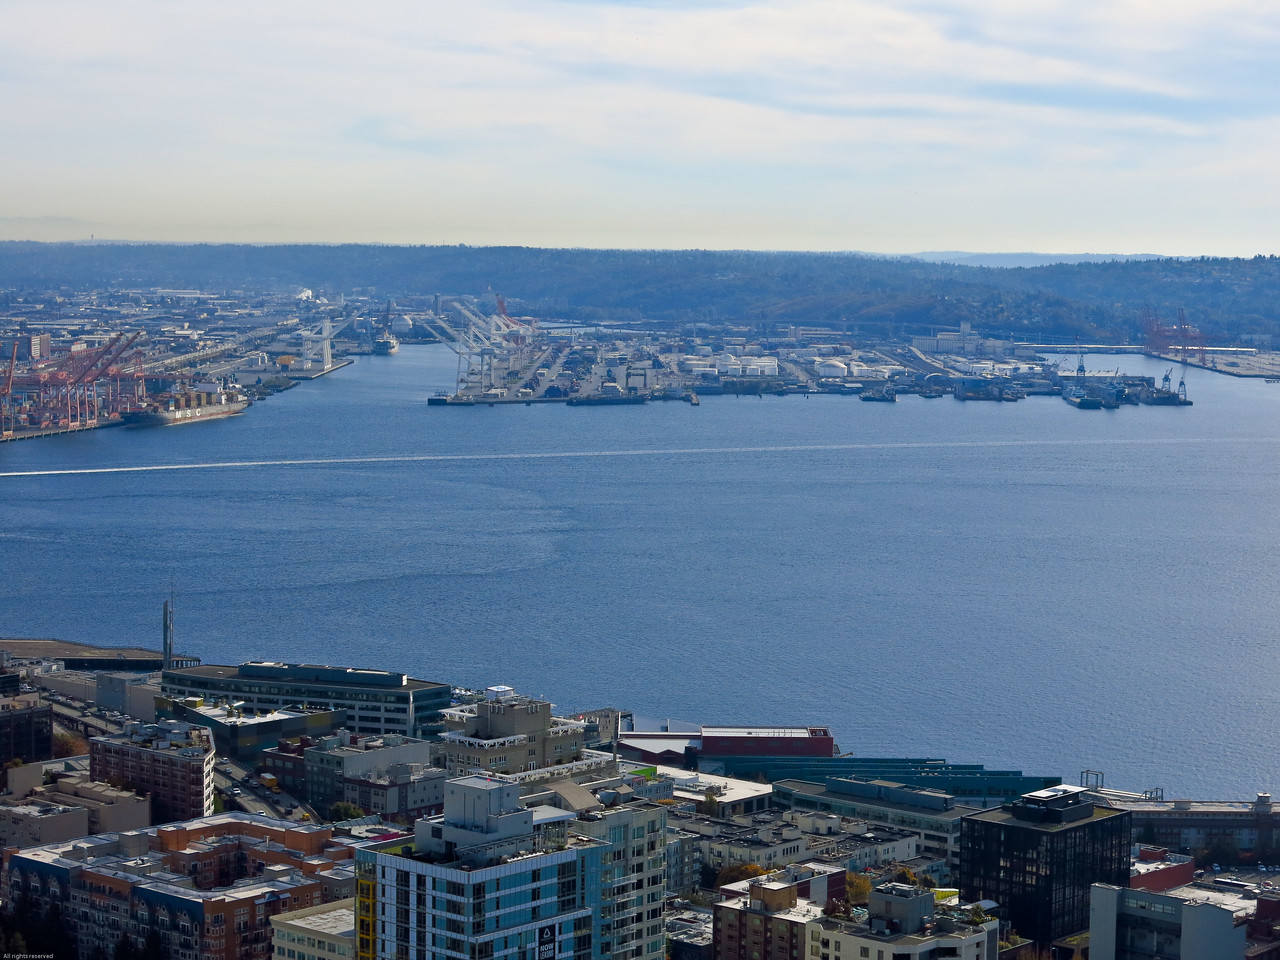 View from the Space Needle looking South:  Elliot Bay and Seattle waterfront